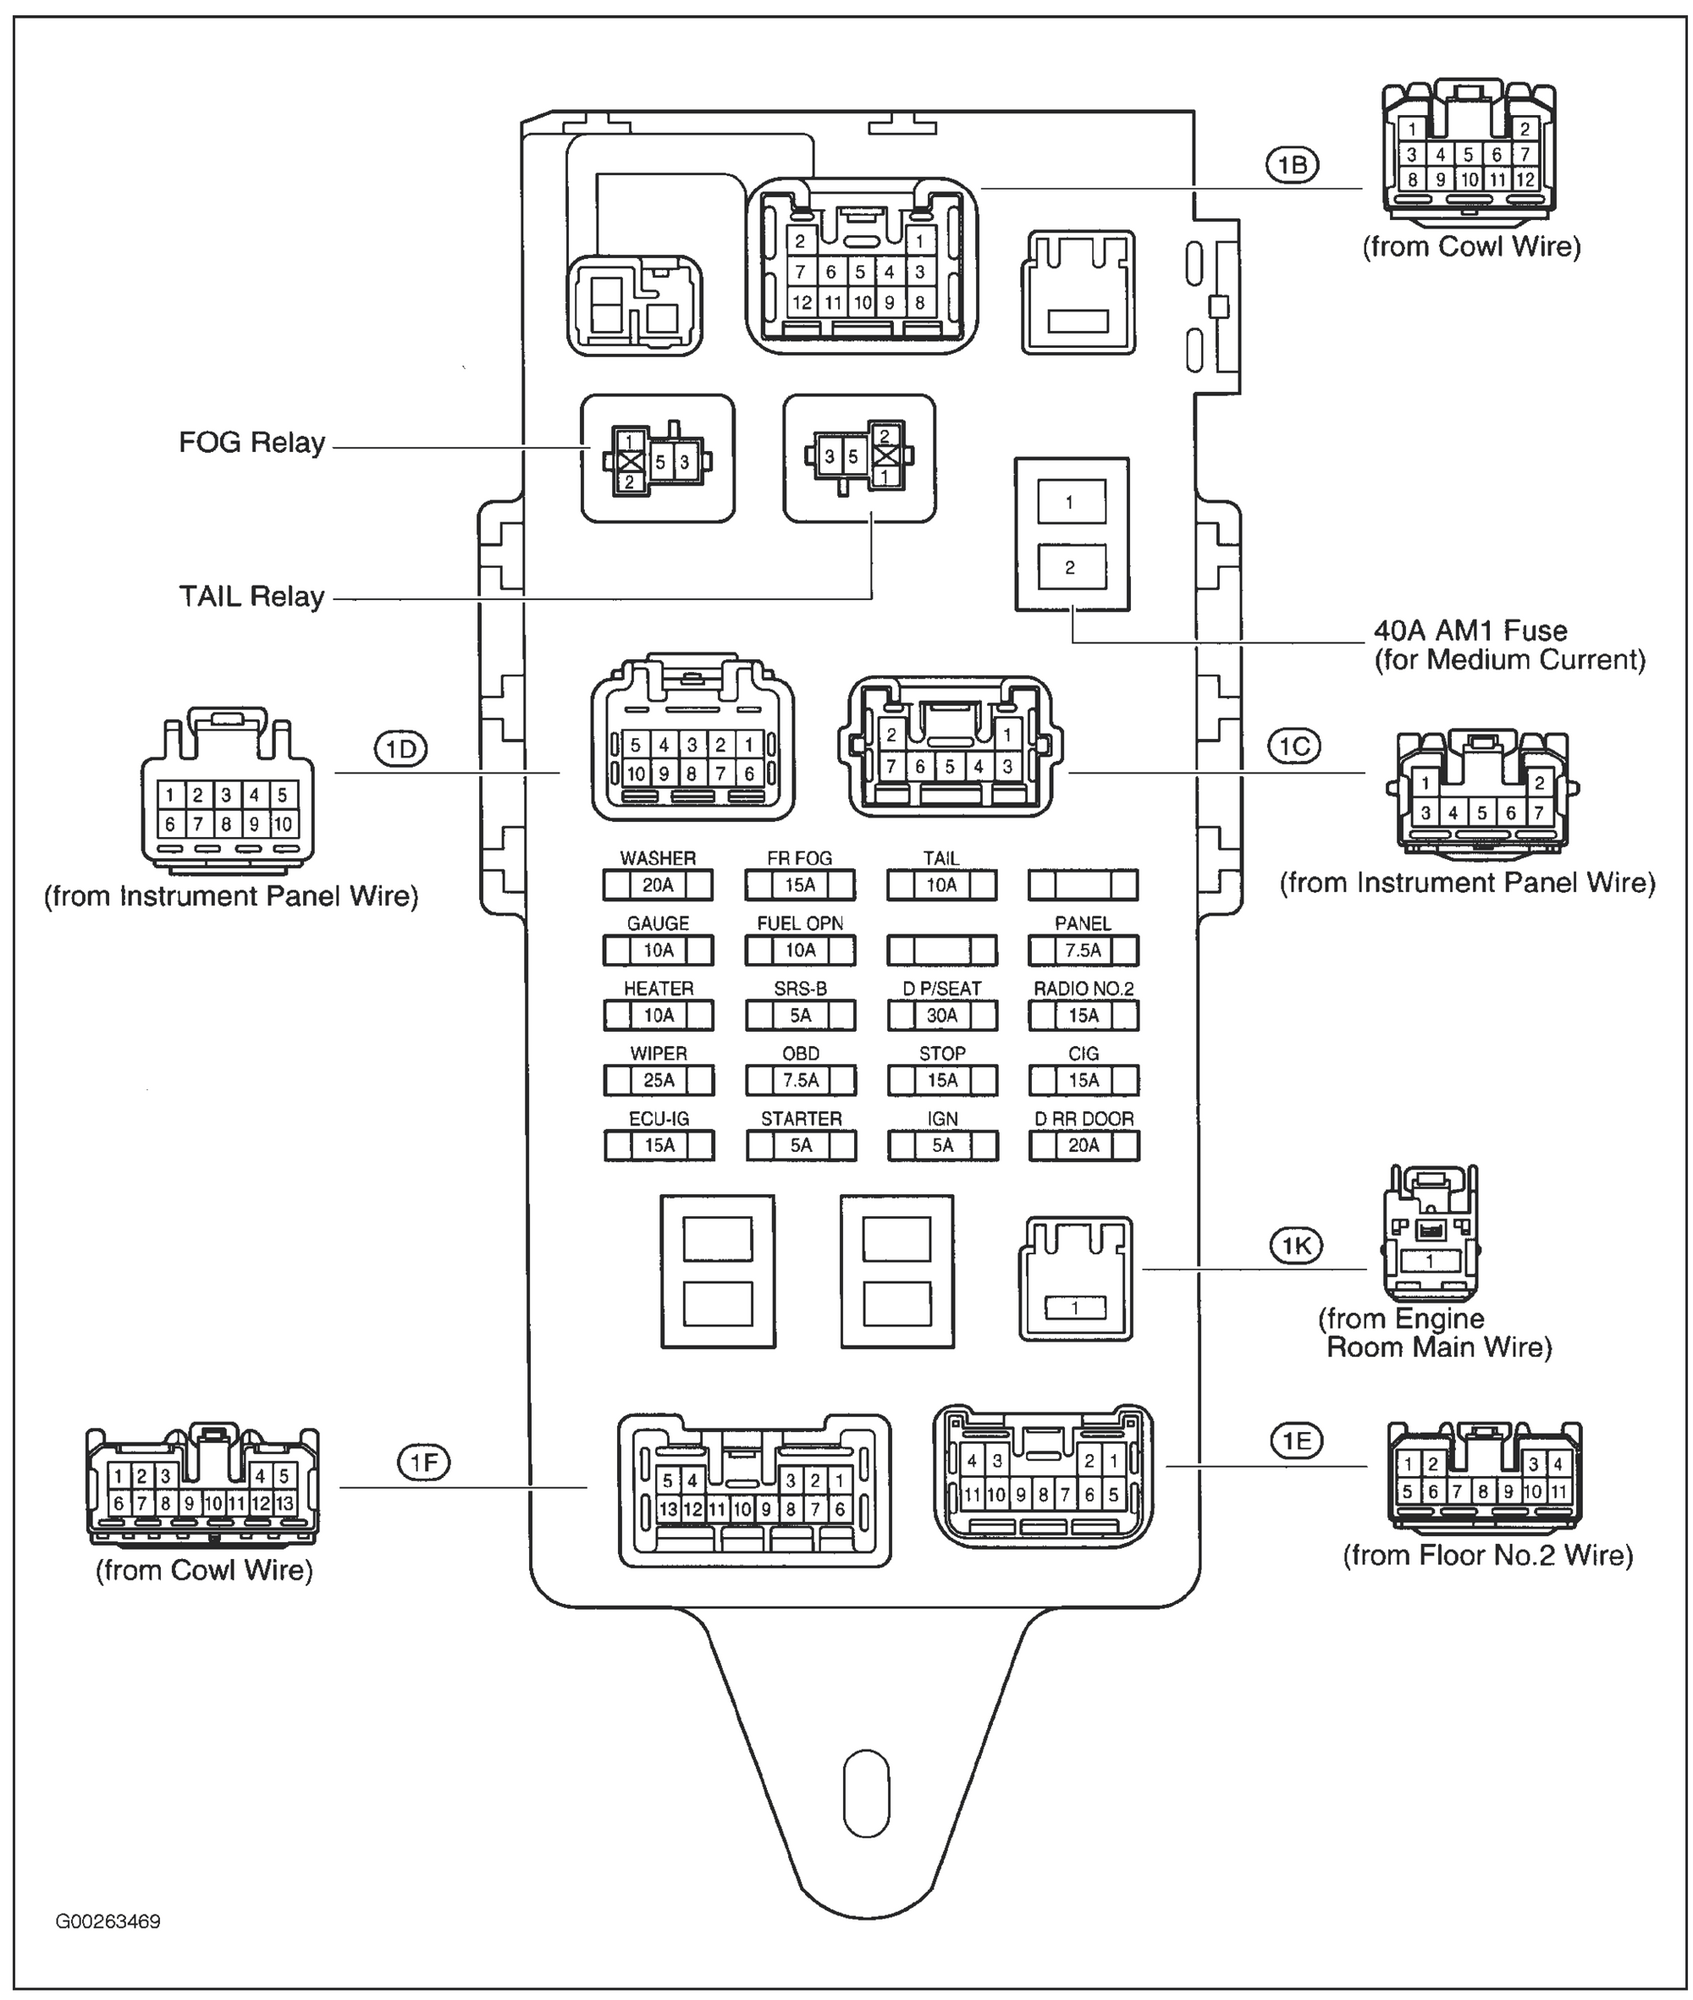 fuse box 1995 lexus gs300 wiring diagram 1995 Lexus Gs300 Fuse Diagram lexus gs300 fuse box wiring diagram